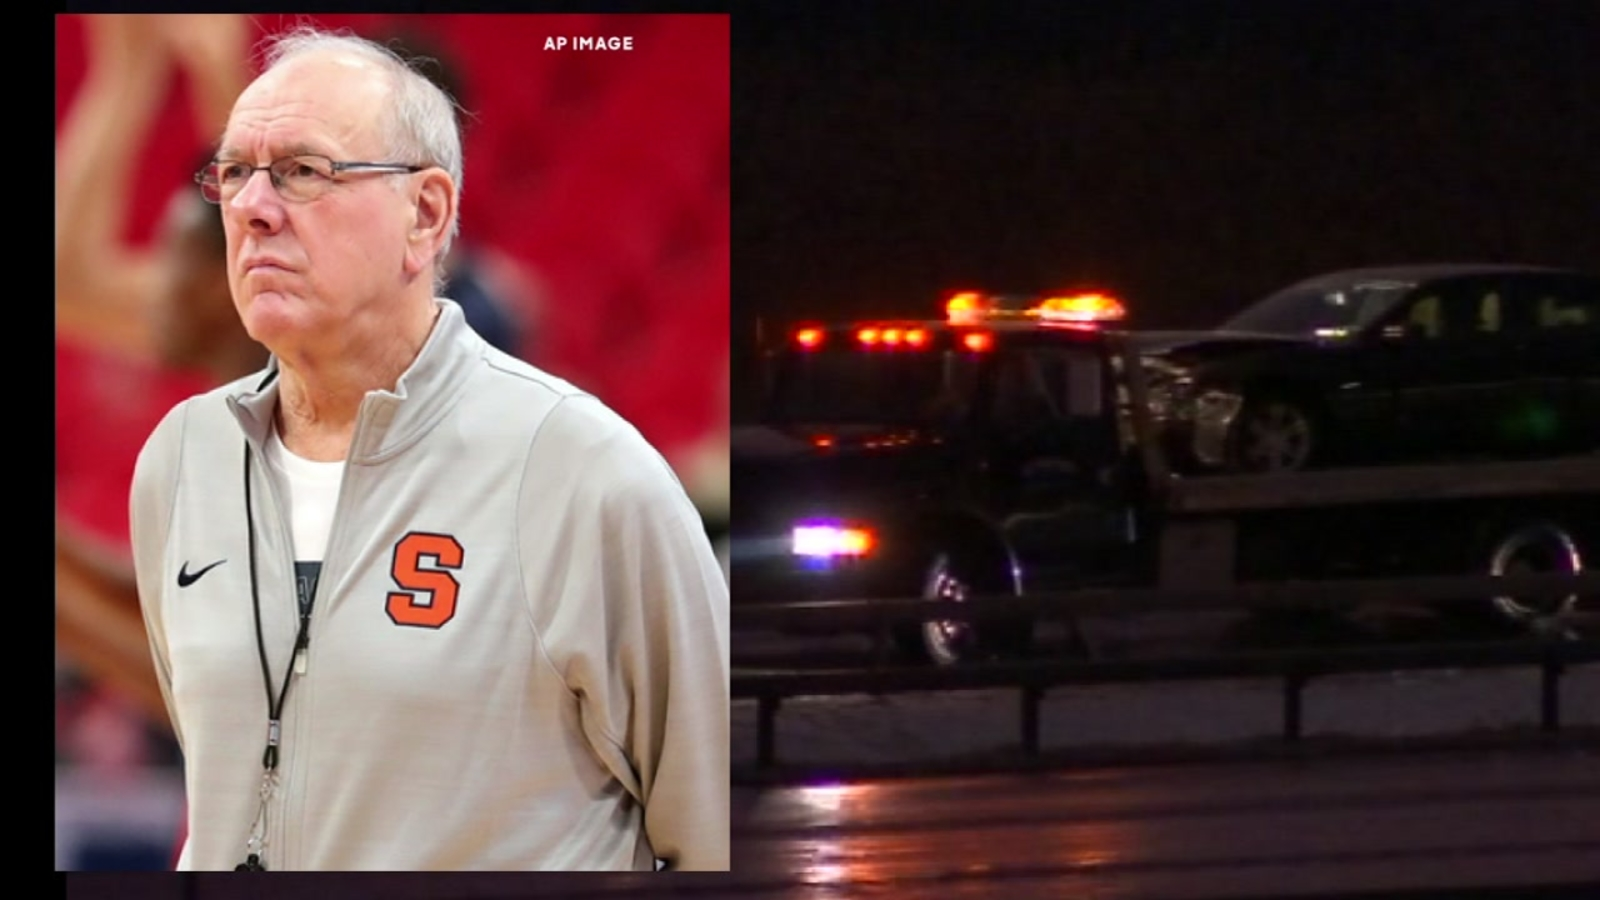 Police Syracuse Men S Basketball Coach Jim Boeheim Strikes Kills Pedestrian On Highway Abc7 Chicago